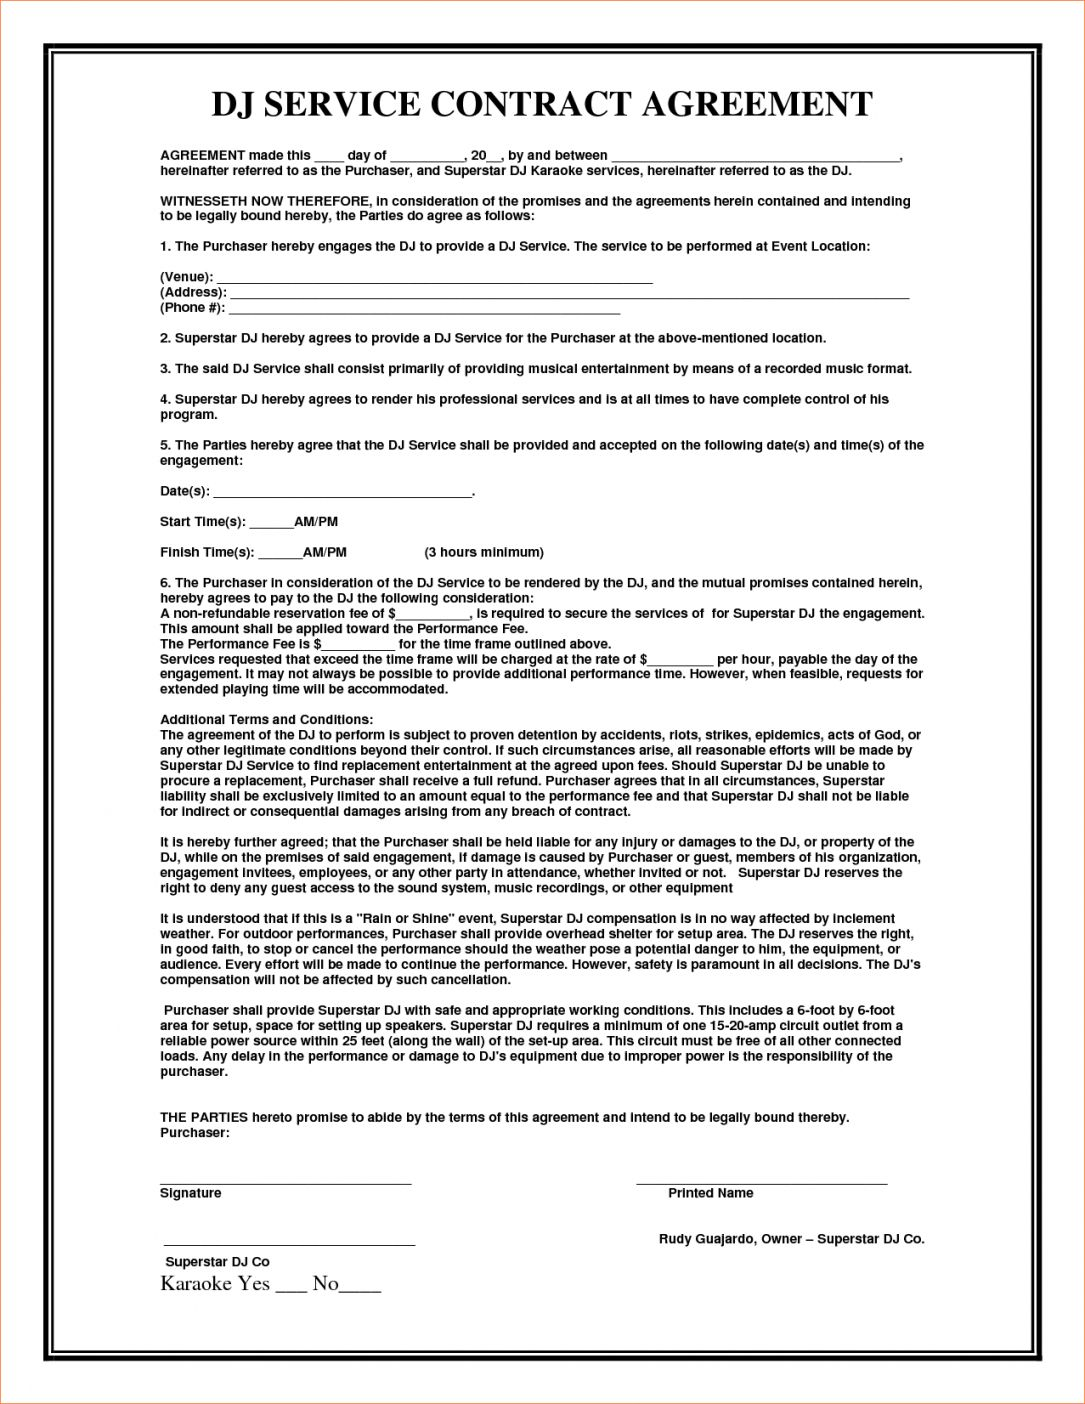 Franchise Transfer Agreement Sample In 2020 Contract Template